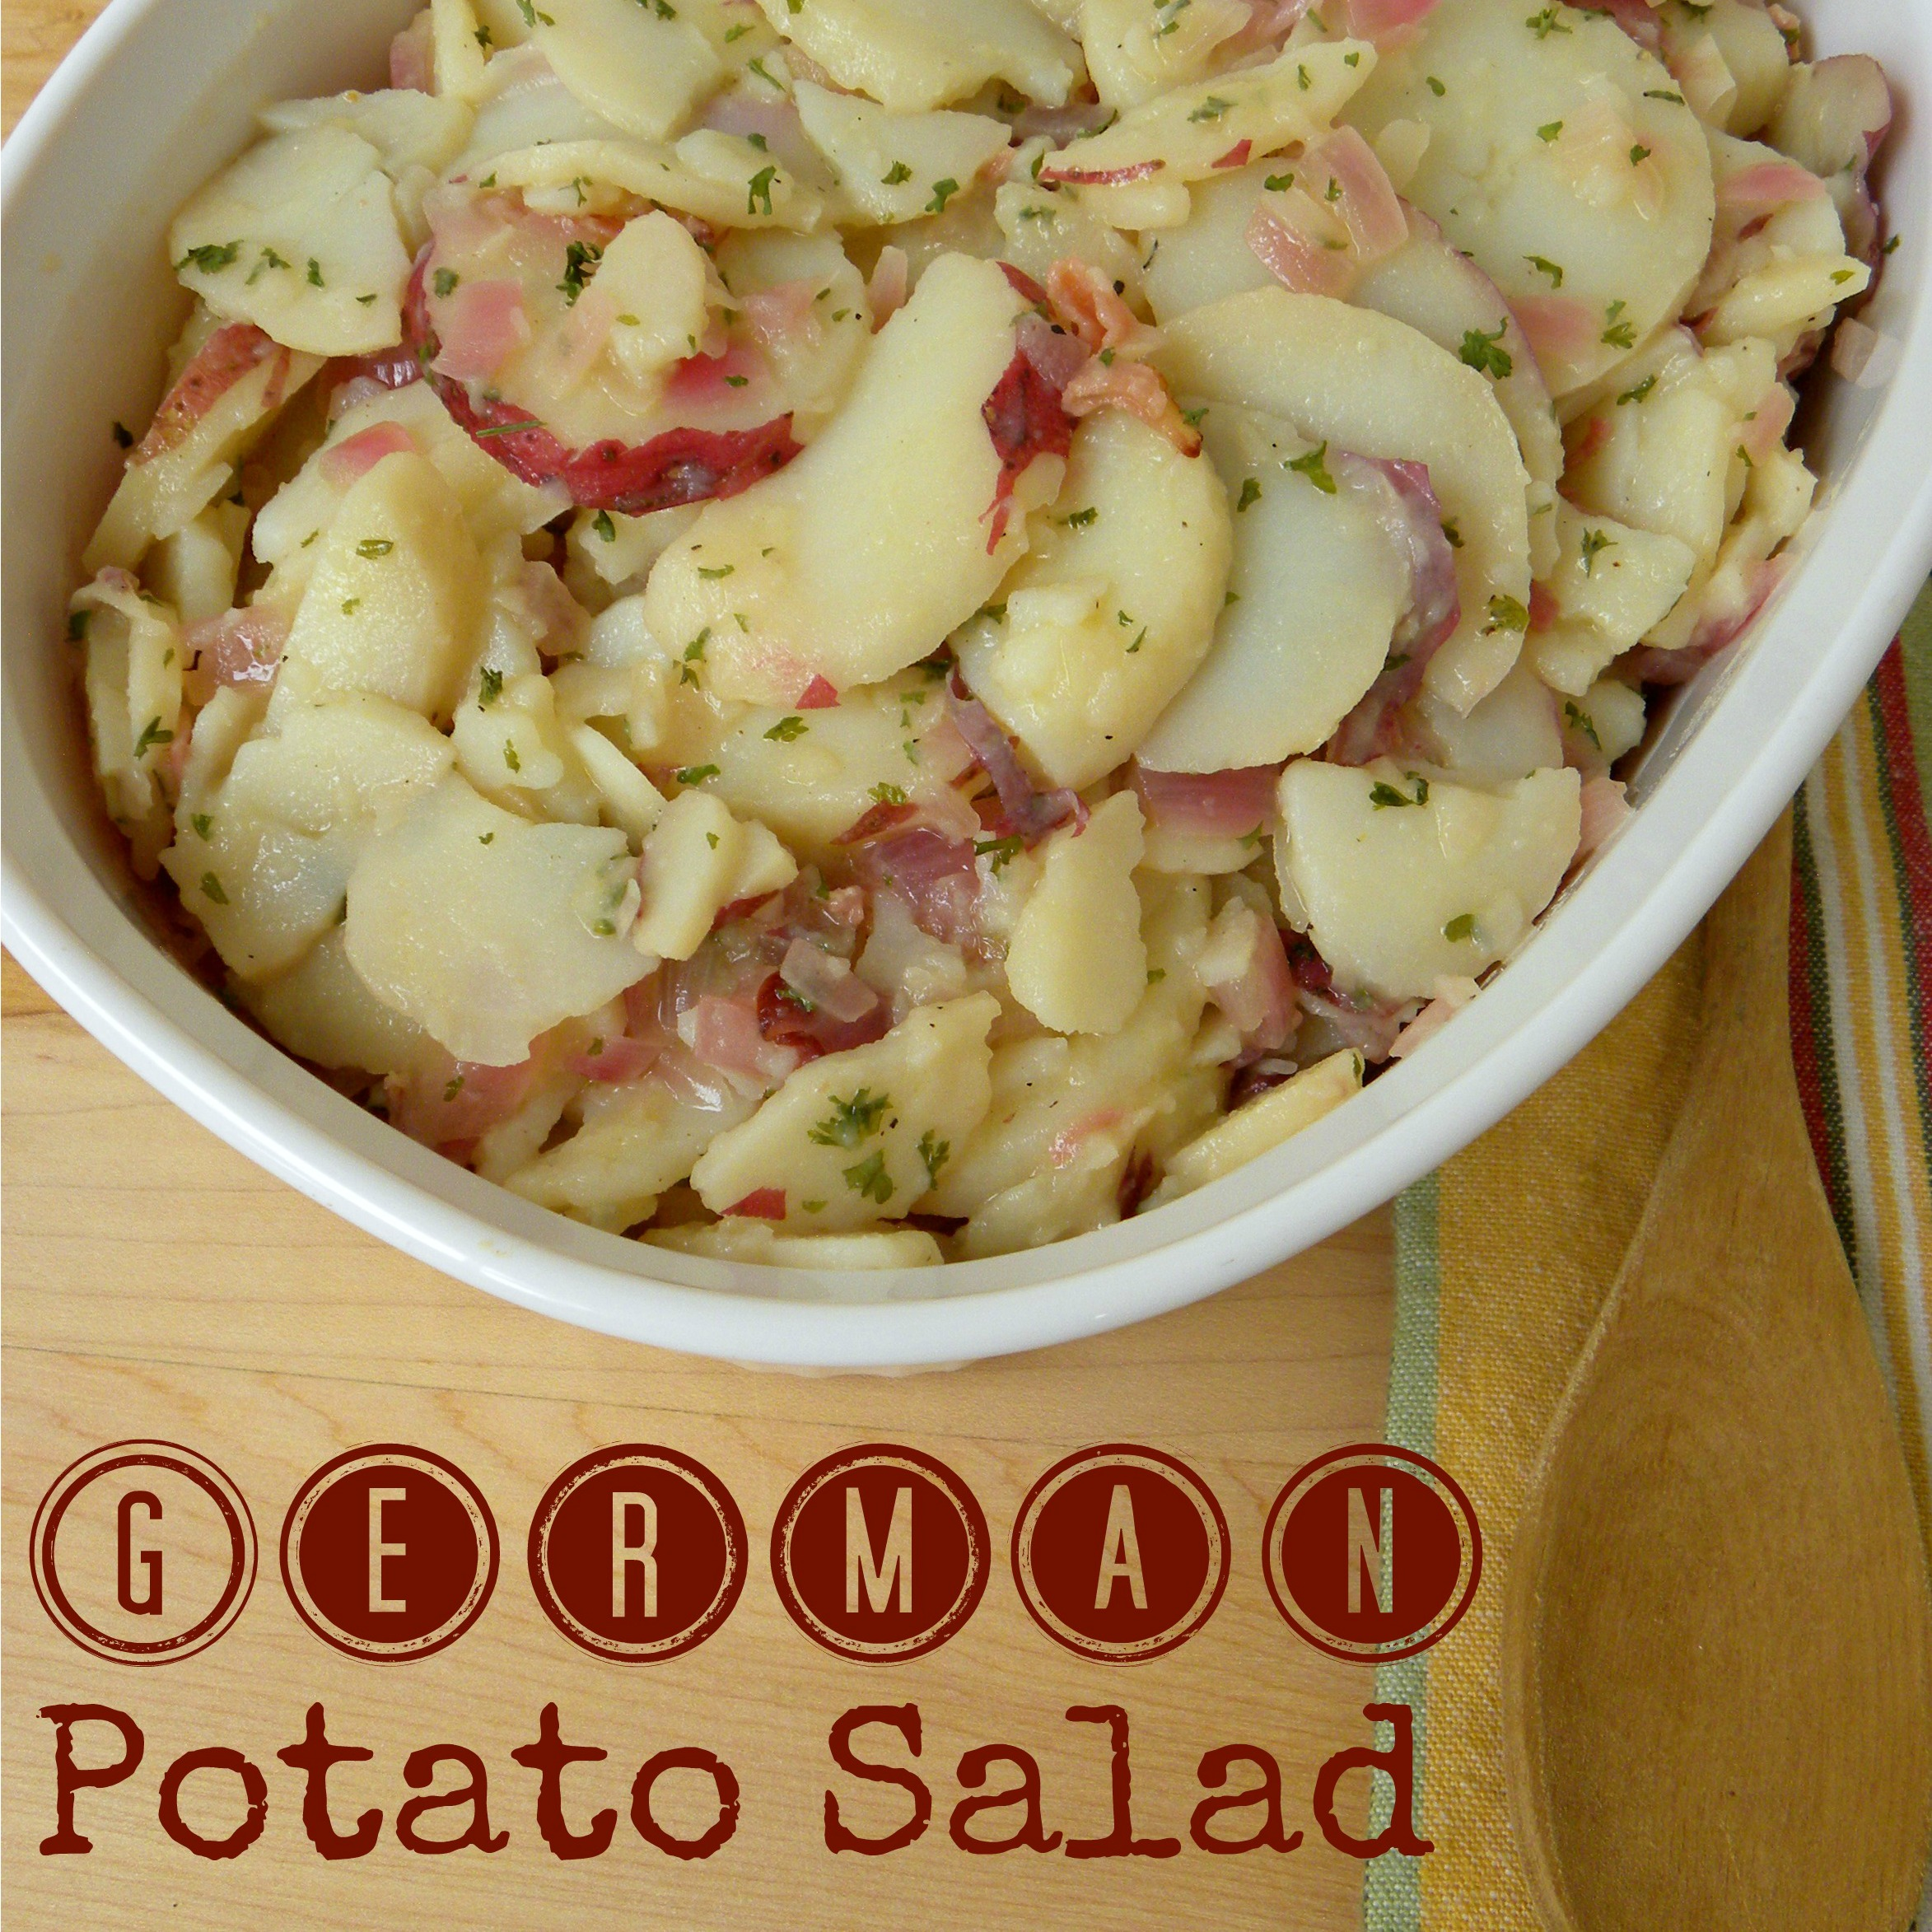 German potato salad recipe, kartoffelsalat, my berlin kitchen, luisa ...